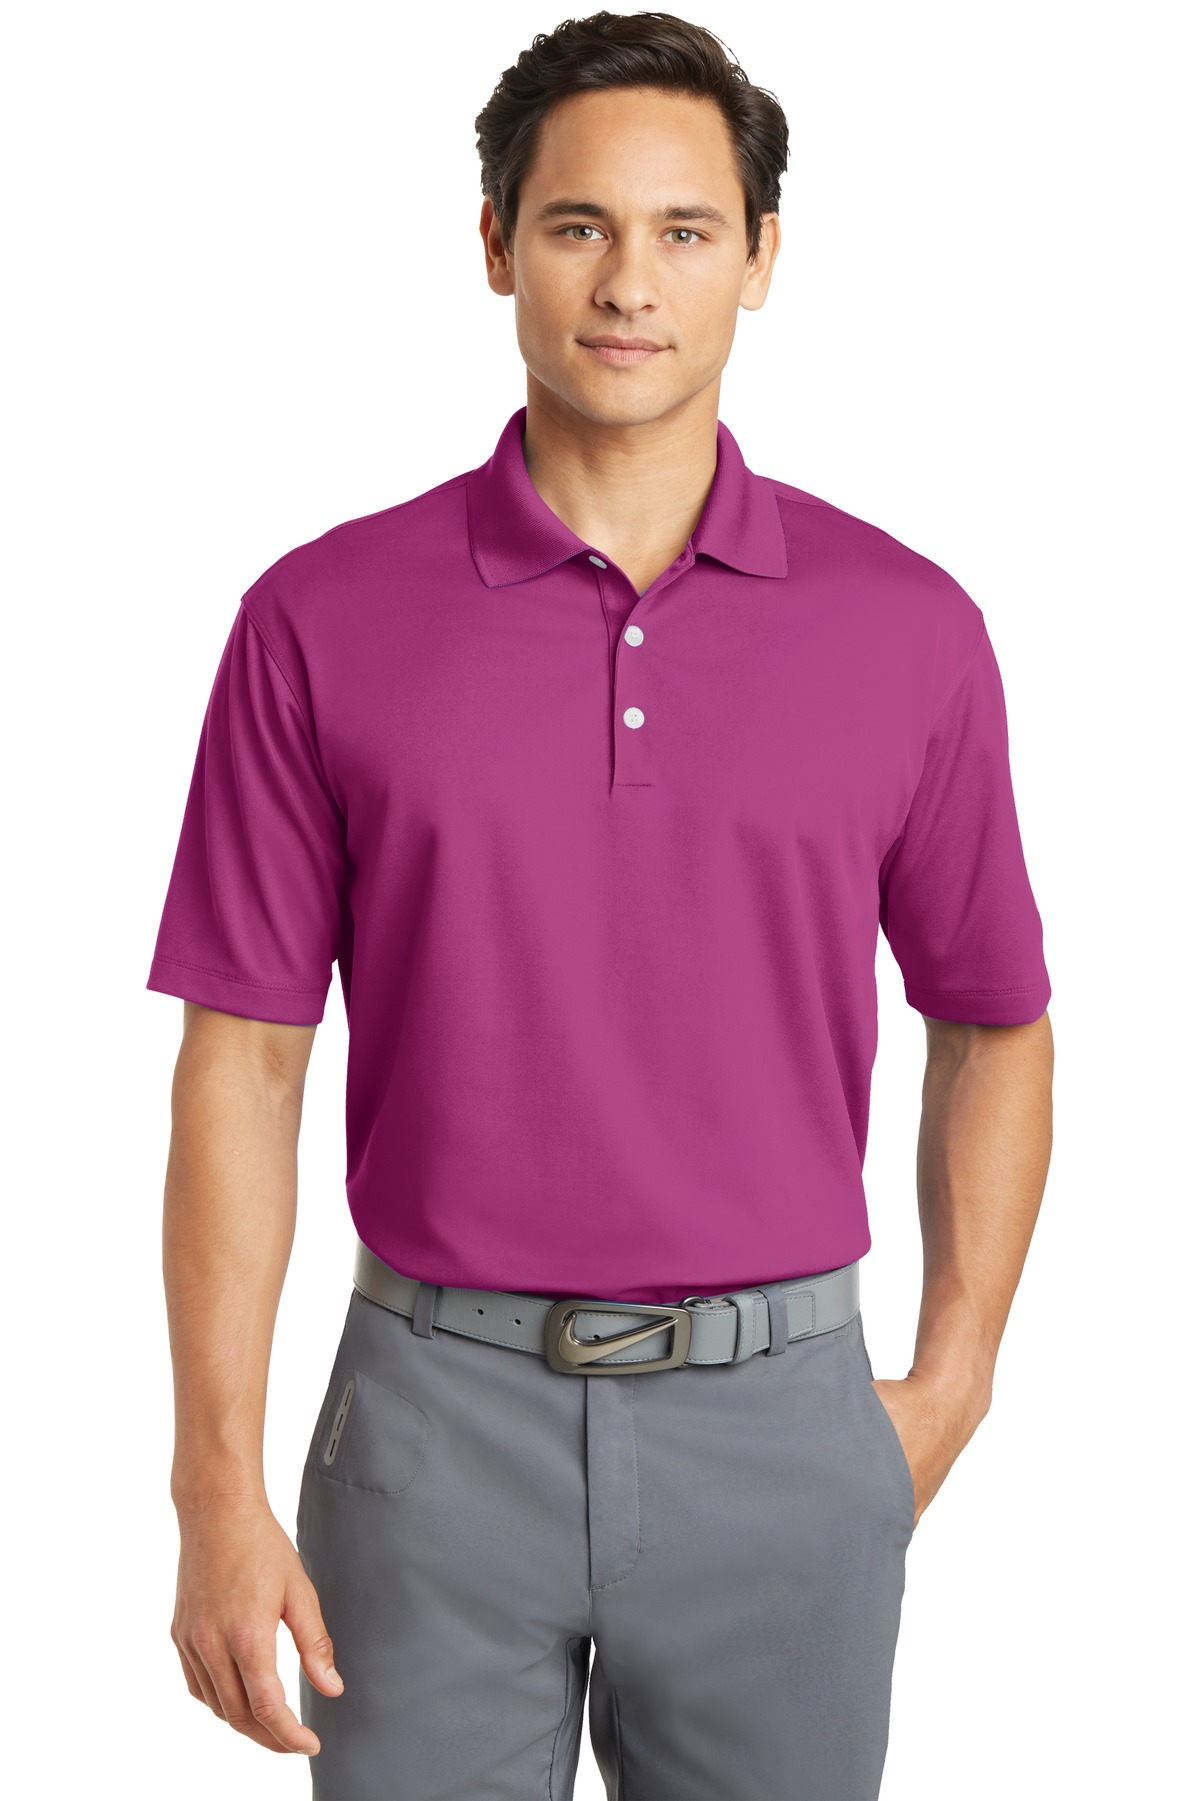 e10697a6 Custom Logo Nike Polo. Dri-FIT 363807-Logo Shirts Direct